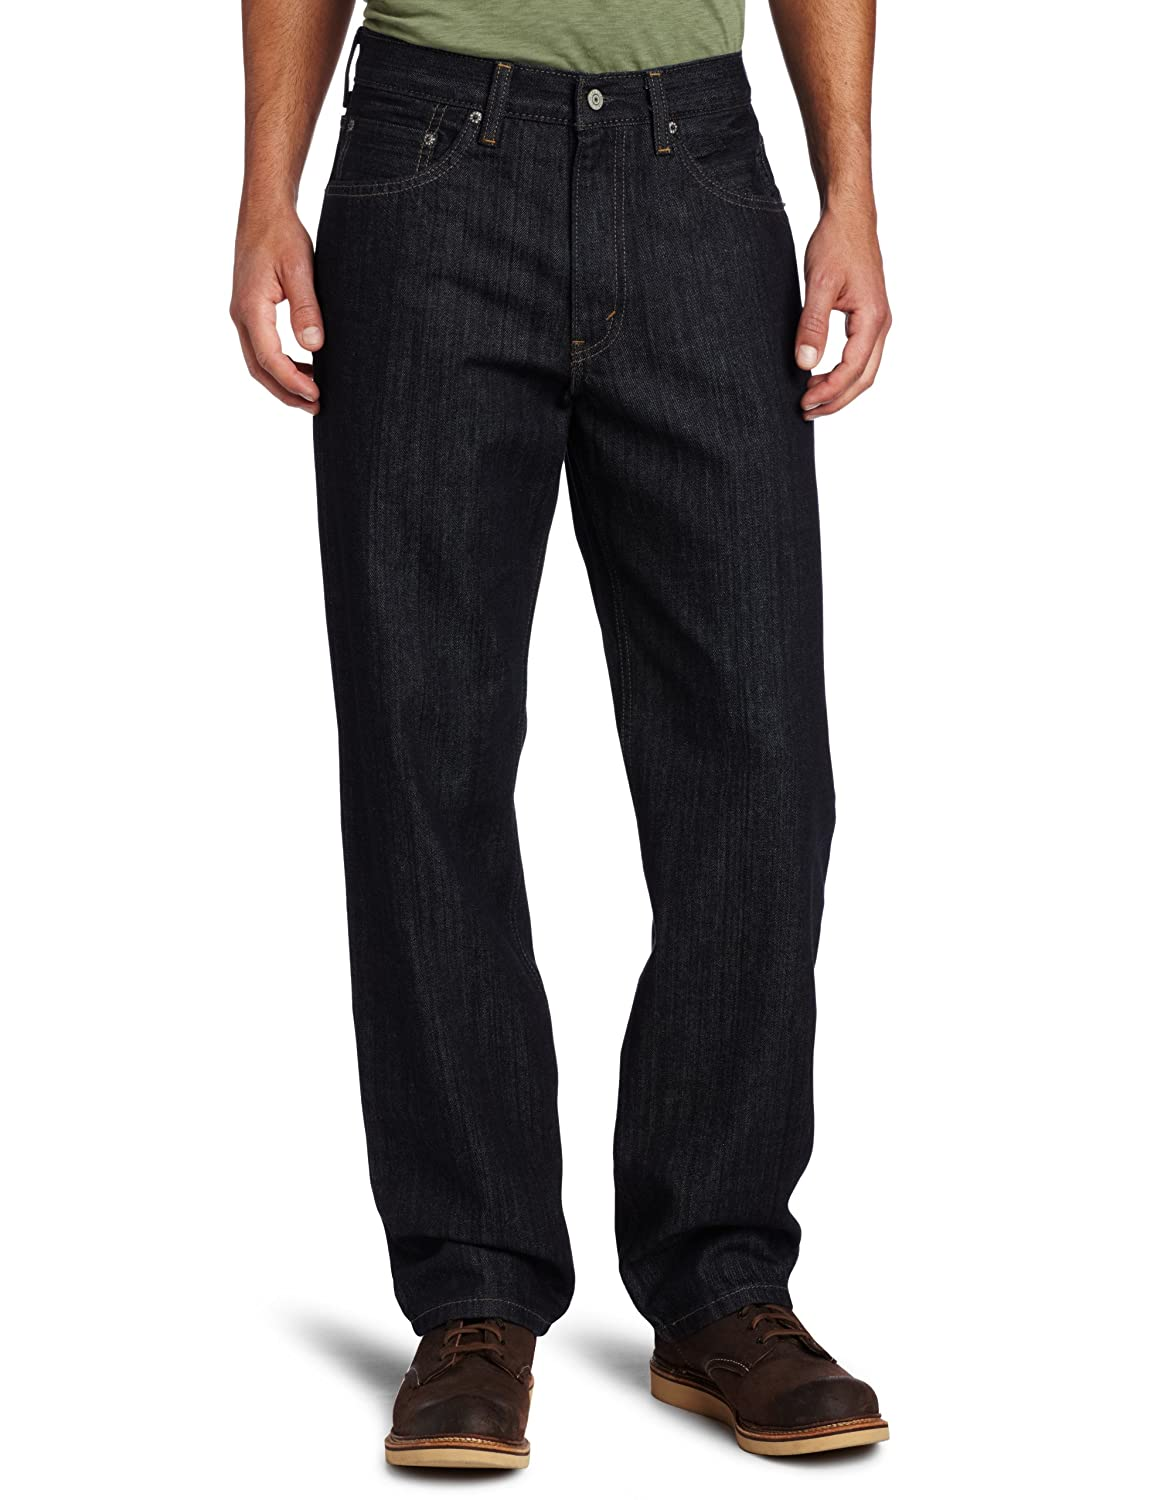 Levi's Men's 550 Relaxed-fit Jean, Levi' s 00550-0216